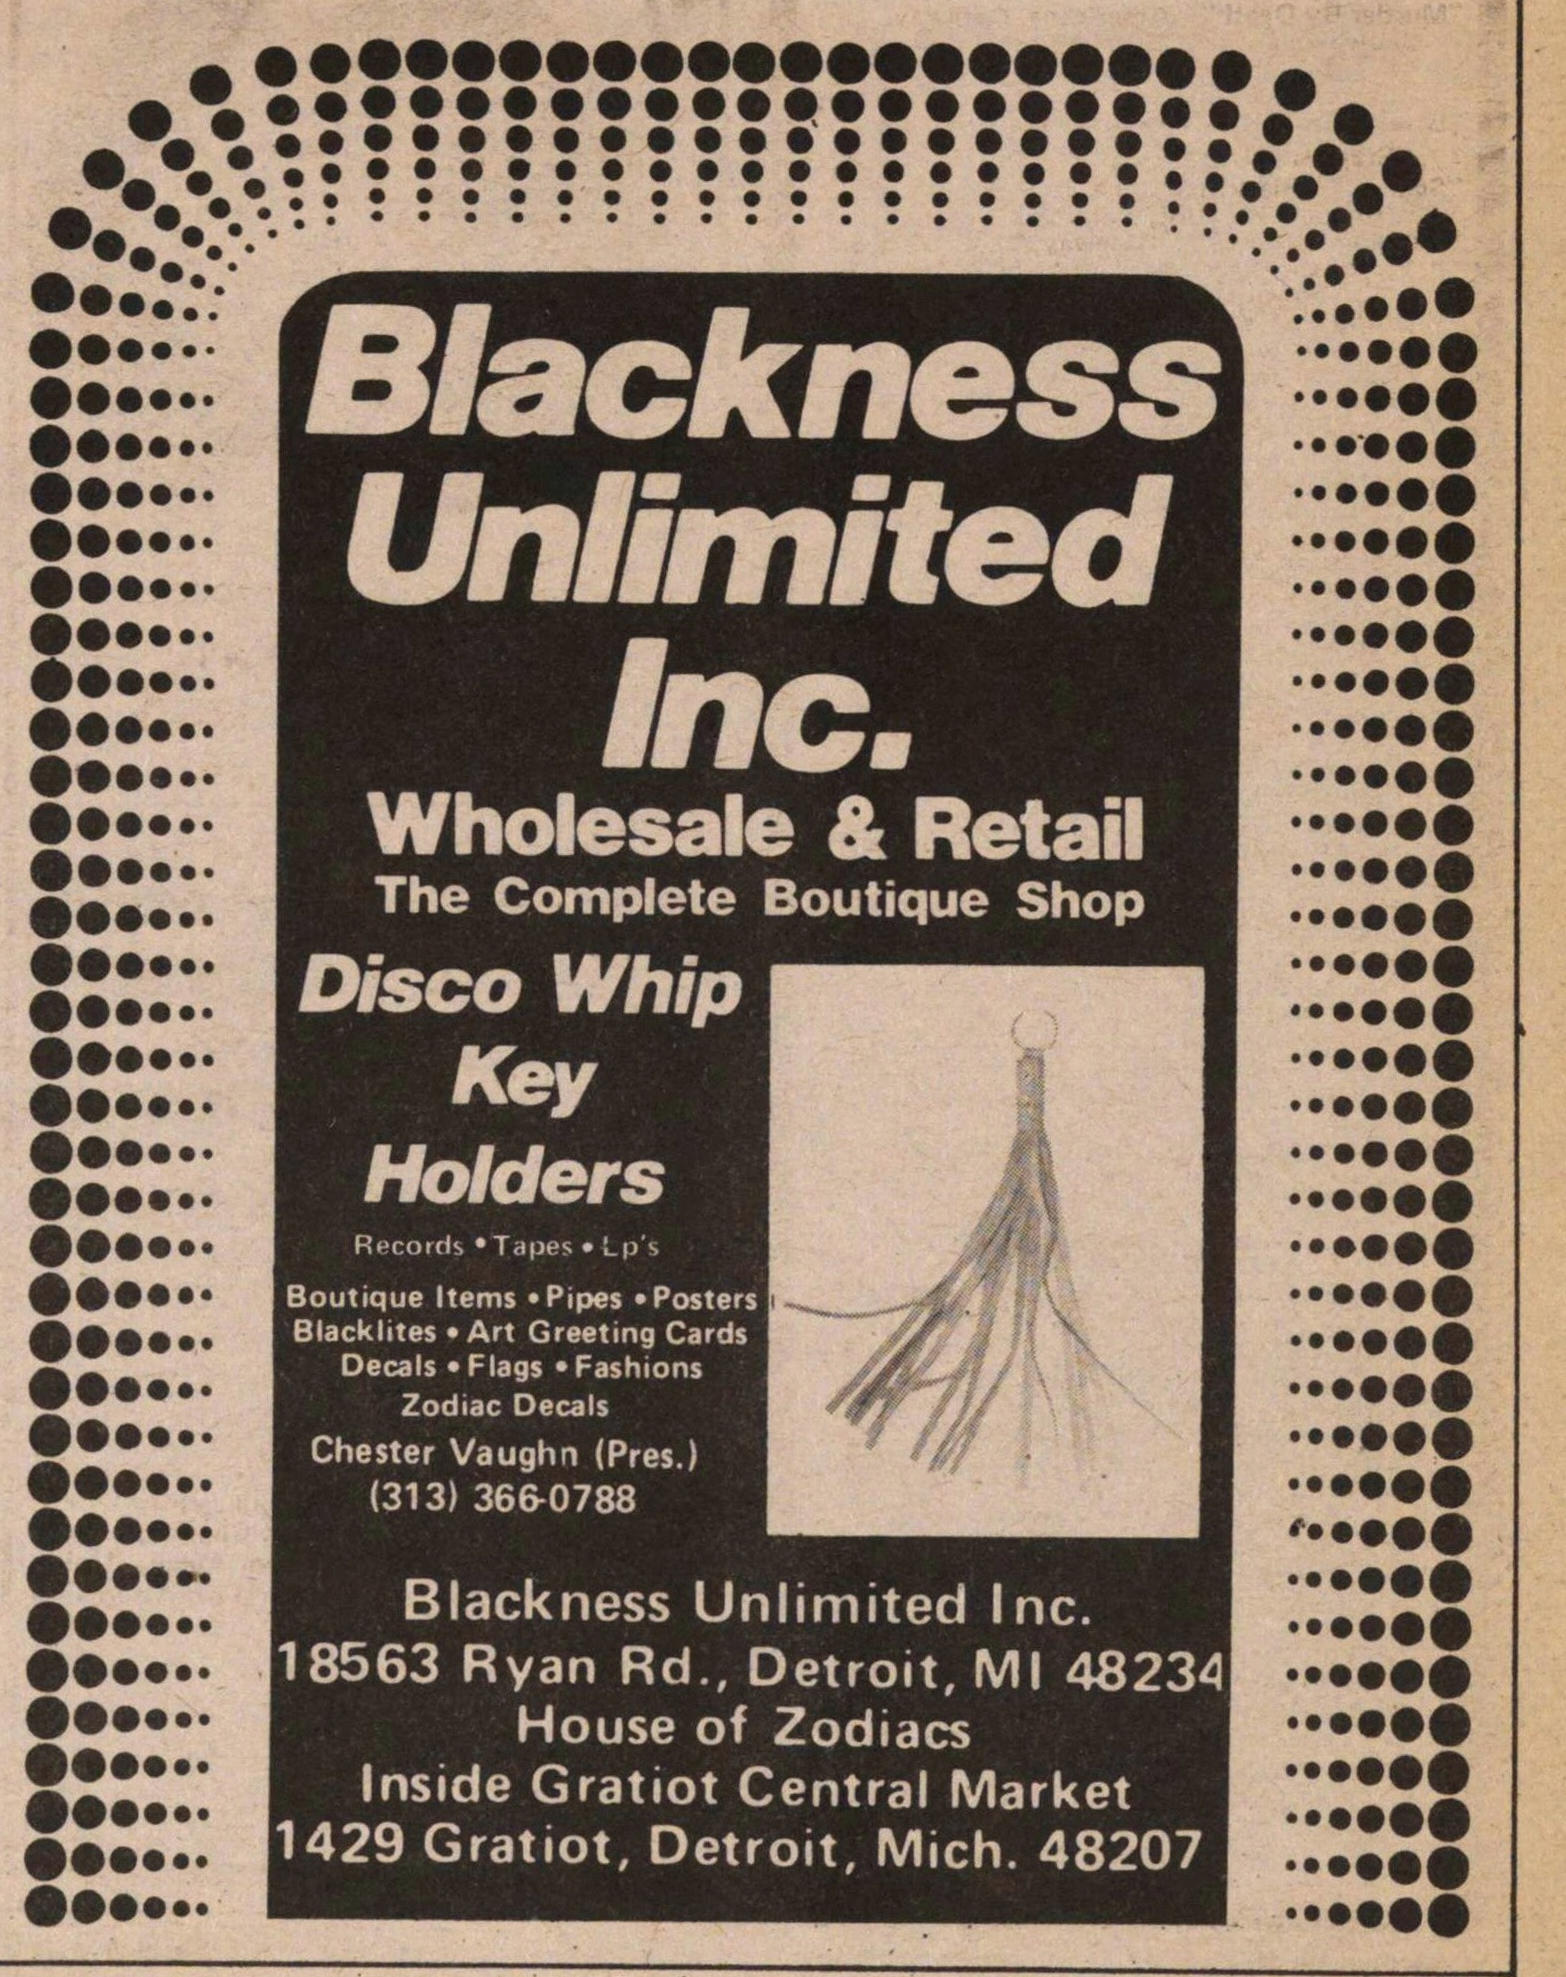 Blackness Unlimited Inc. image